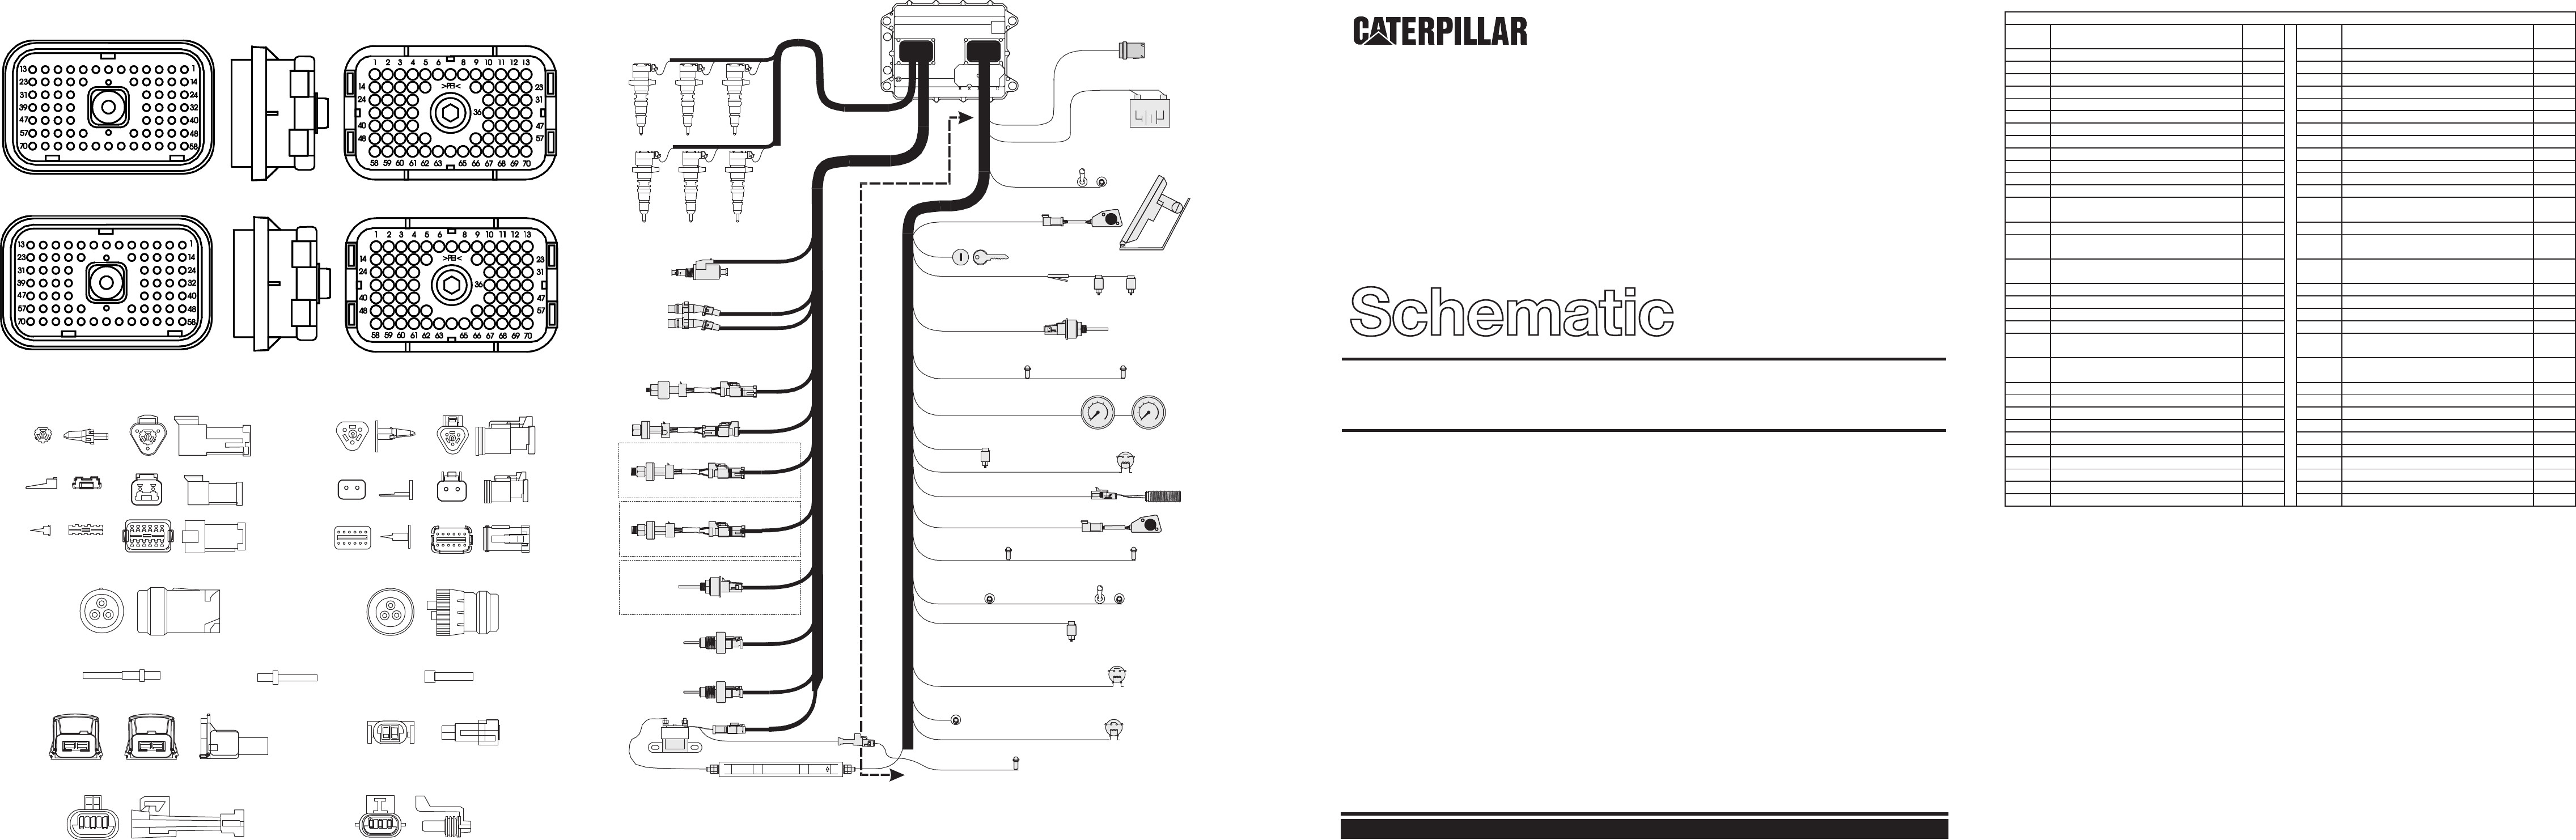 cat c7 ecm wiring diagram Download-Bg1 Cat 3126 Intake Heater Wiring Diagram  3 2